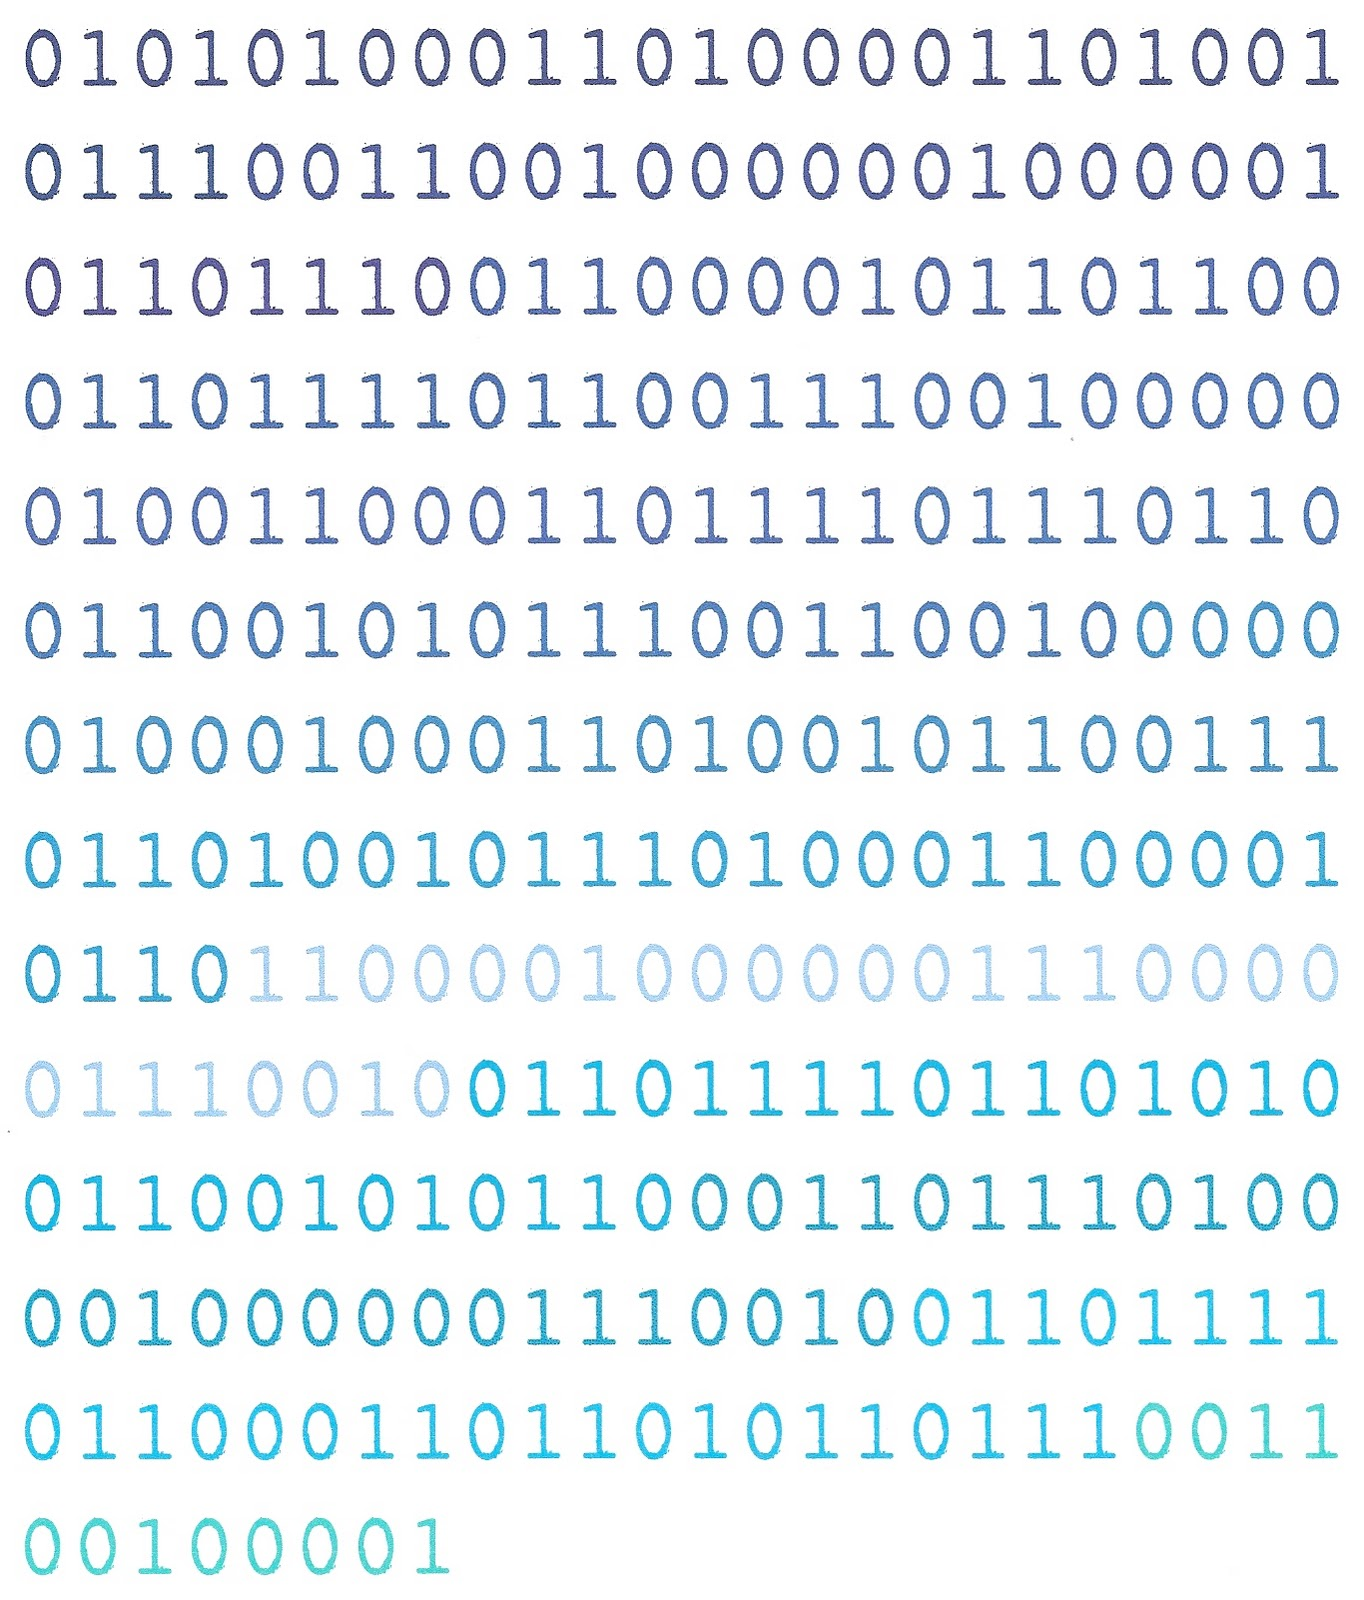 Perl script to convert binary file to hex